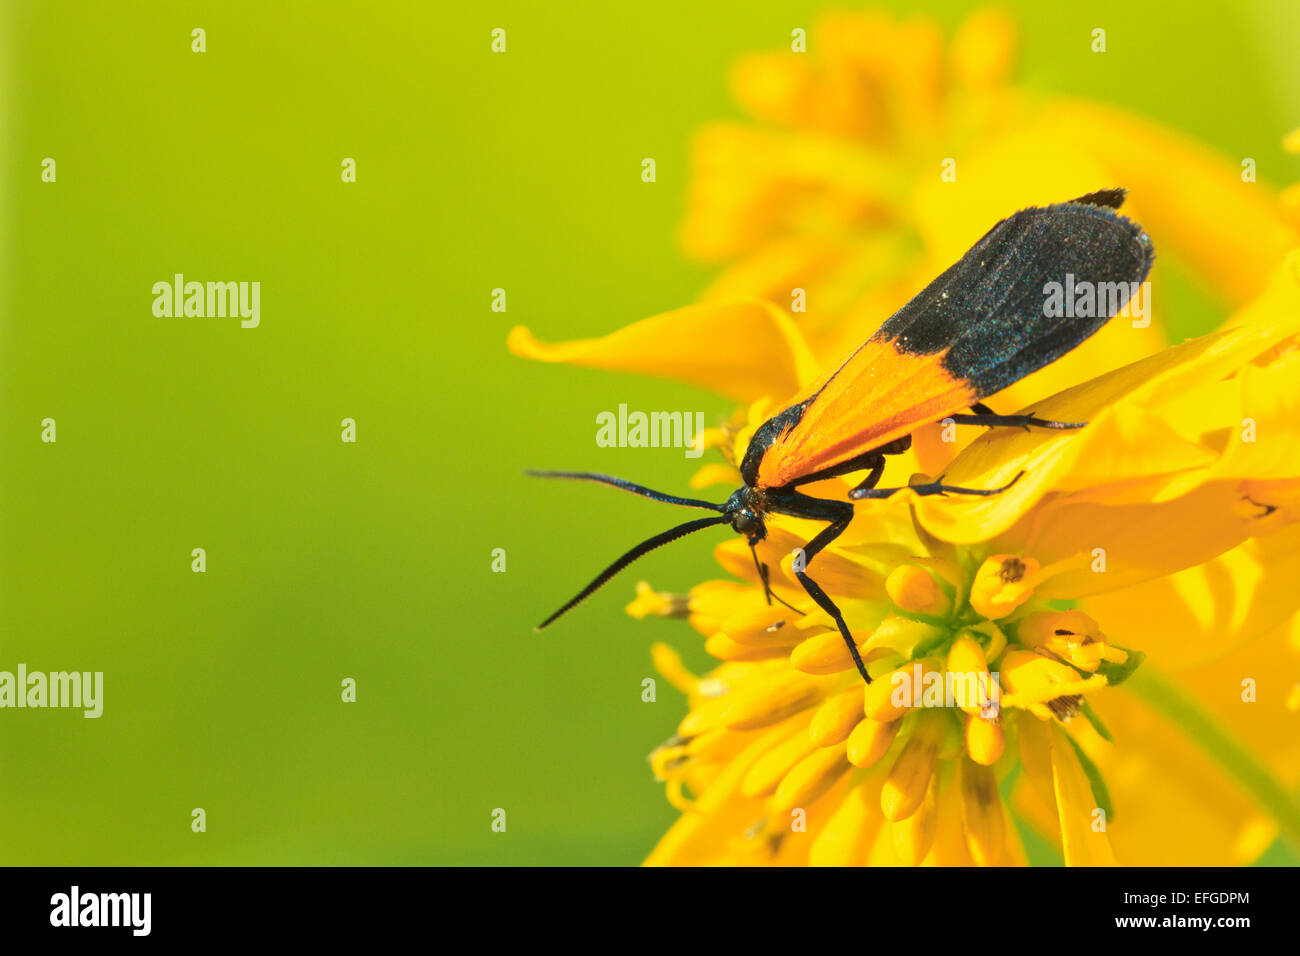 yellow and black moth stockfotos yellow and black moth bilder alamy. Black Bedroom Furniture Sets. Home Design Ideas